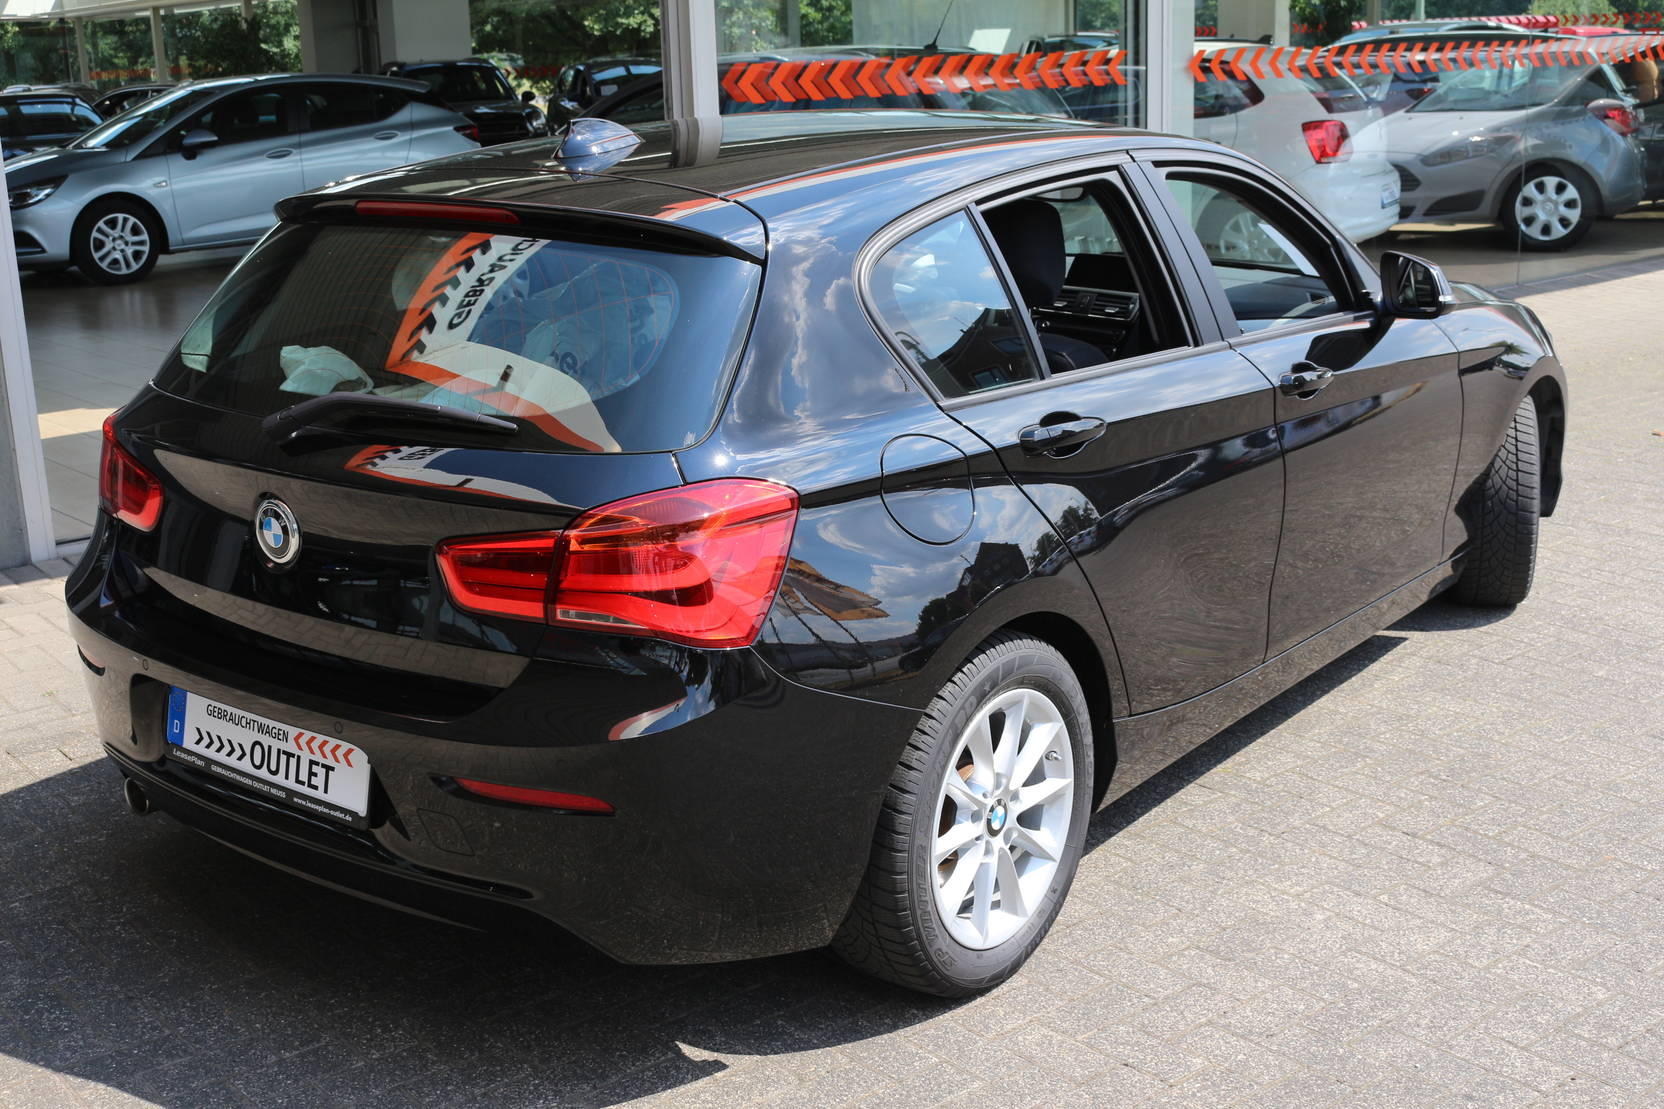 BMW 1 Serie 116d EfficientDynamics Edition Advantage (638277) detail2